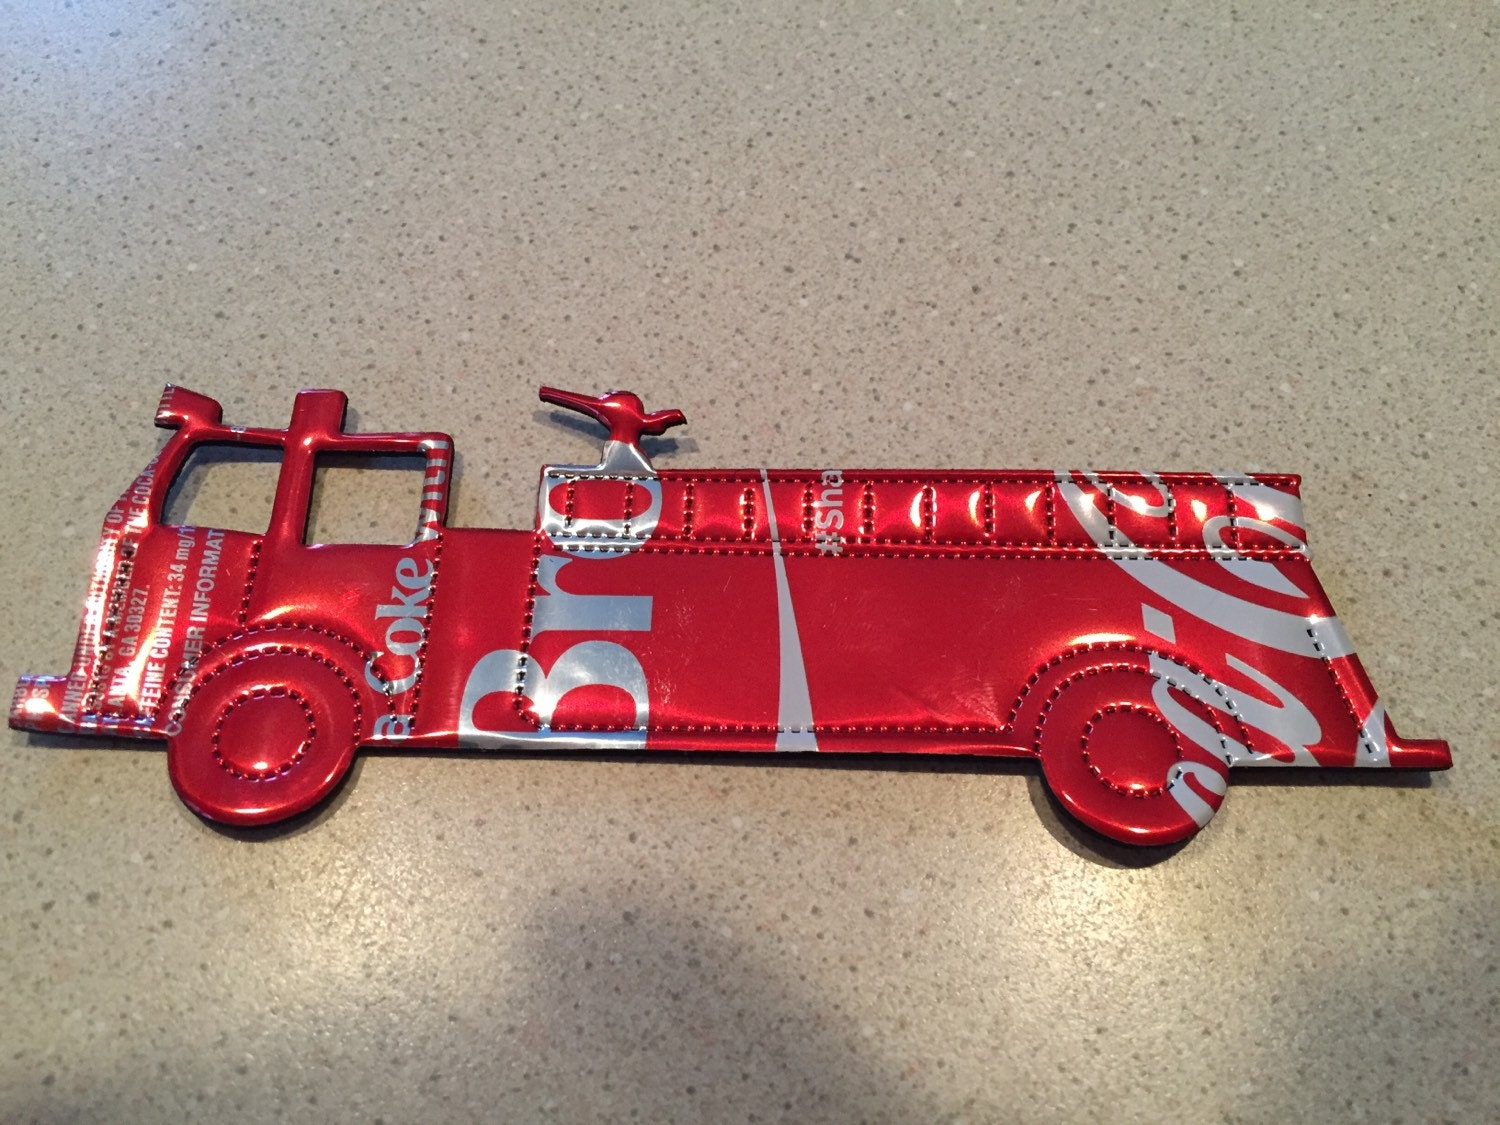 Personalized firefighter ornaments - Fire Truck Fire Fighter Fire Man Christmas Ornament Recycled Soda Can Art Made From